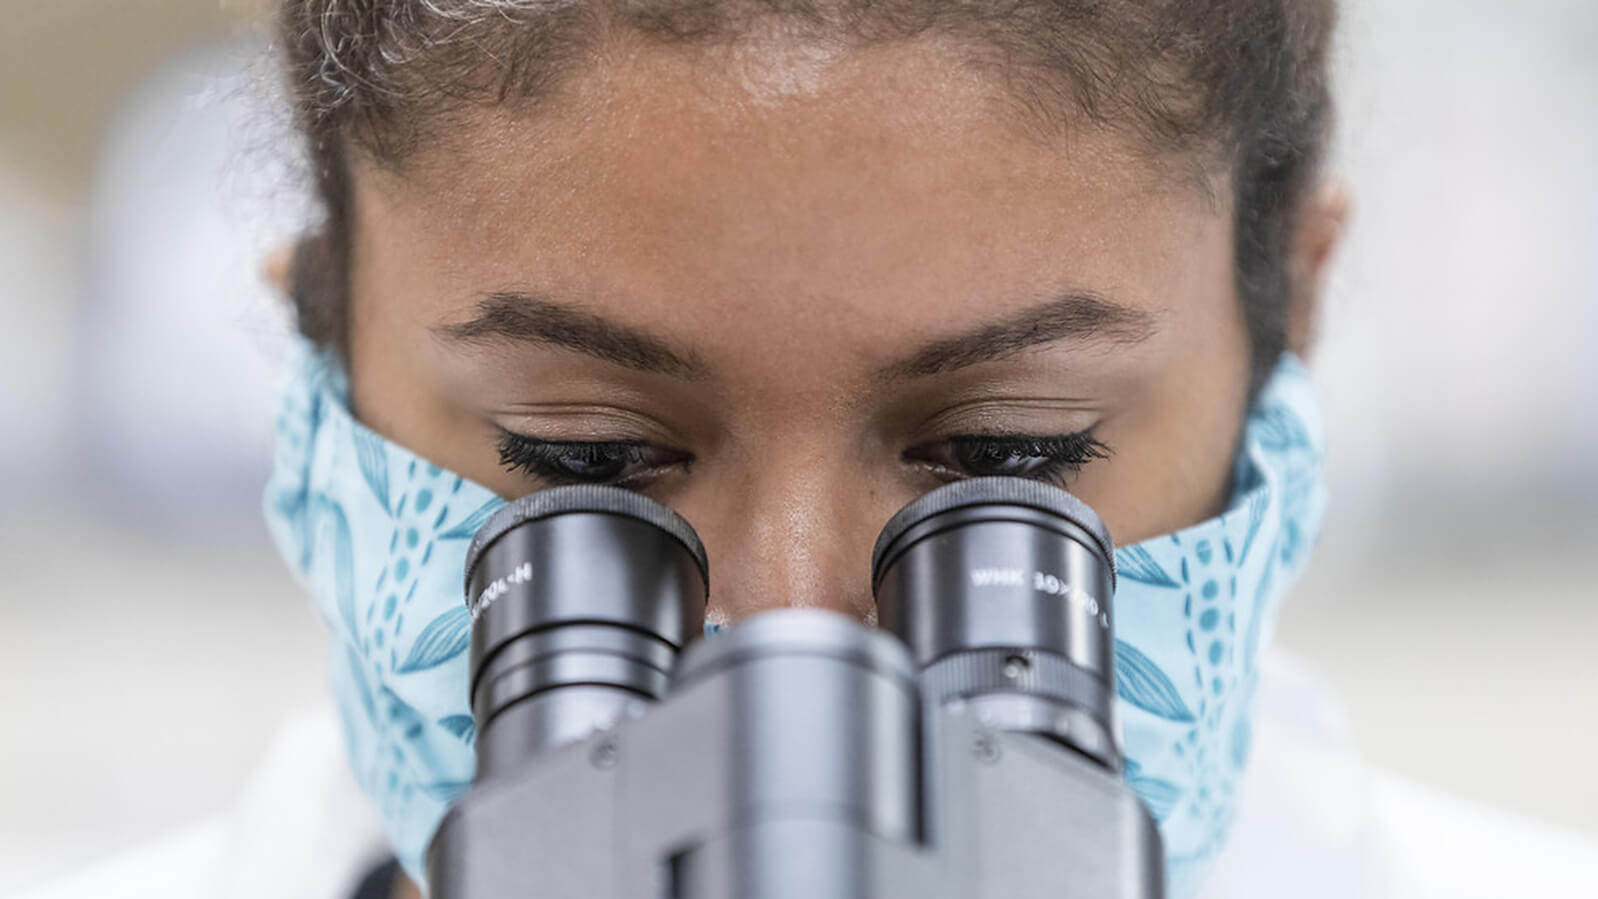 Brianna Fisher-Jones looks through a microscope while wearing a mask.